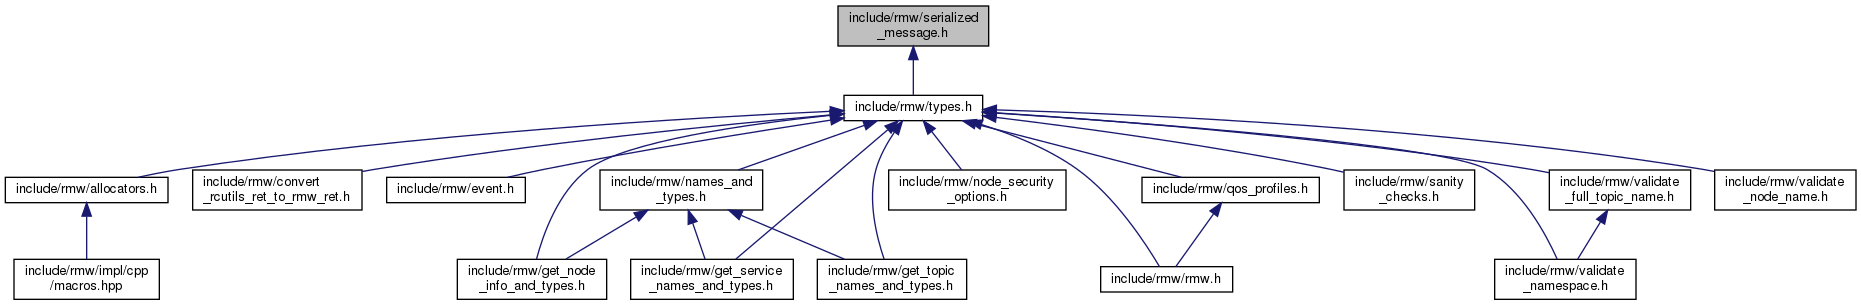 rmw: include/rmw/serialized_message h File Reference